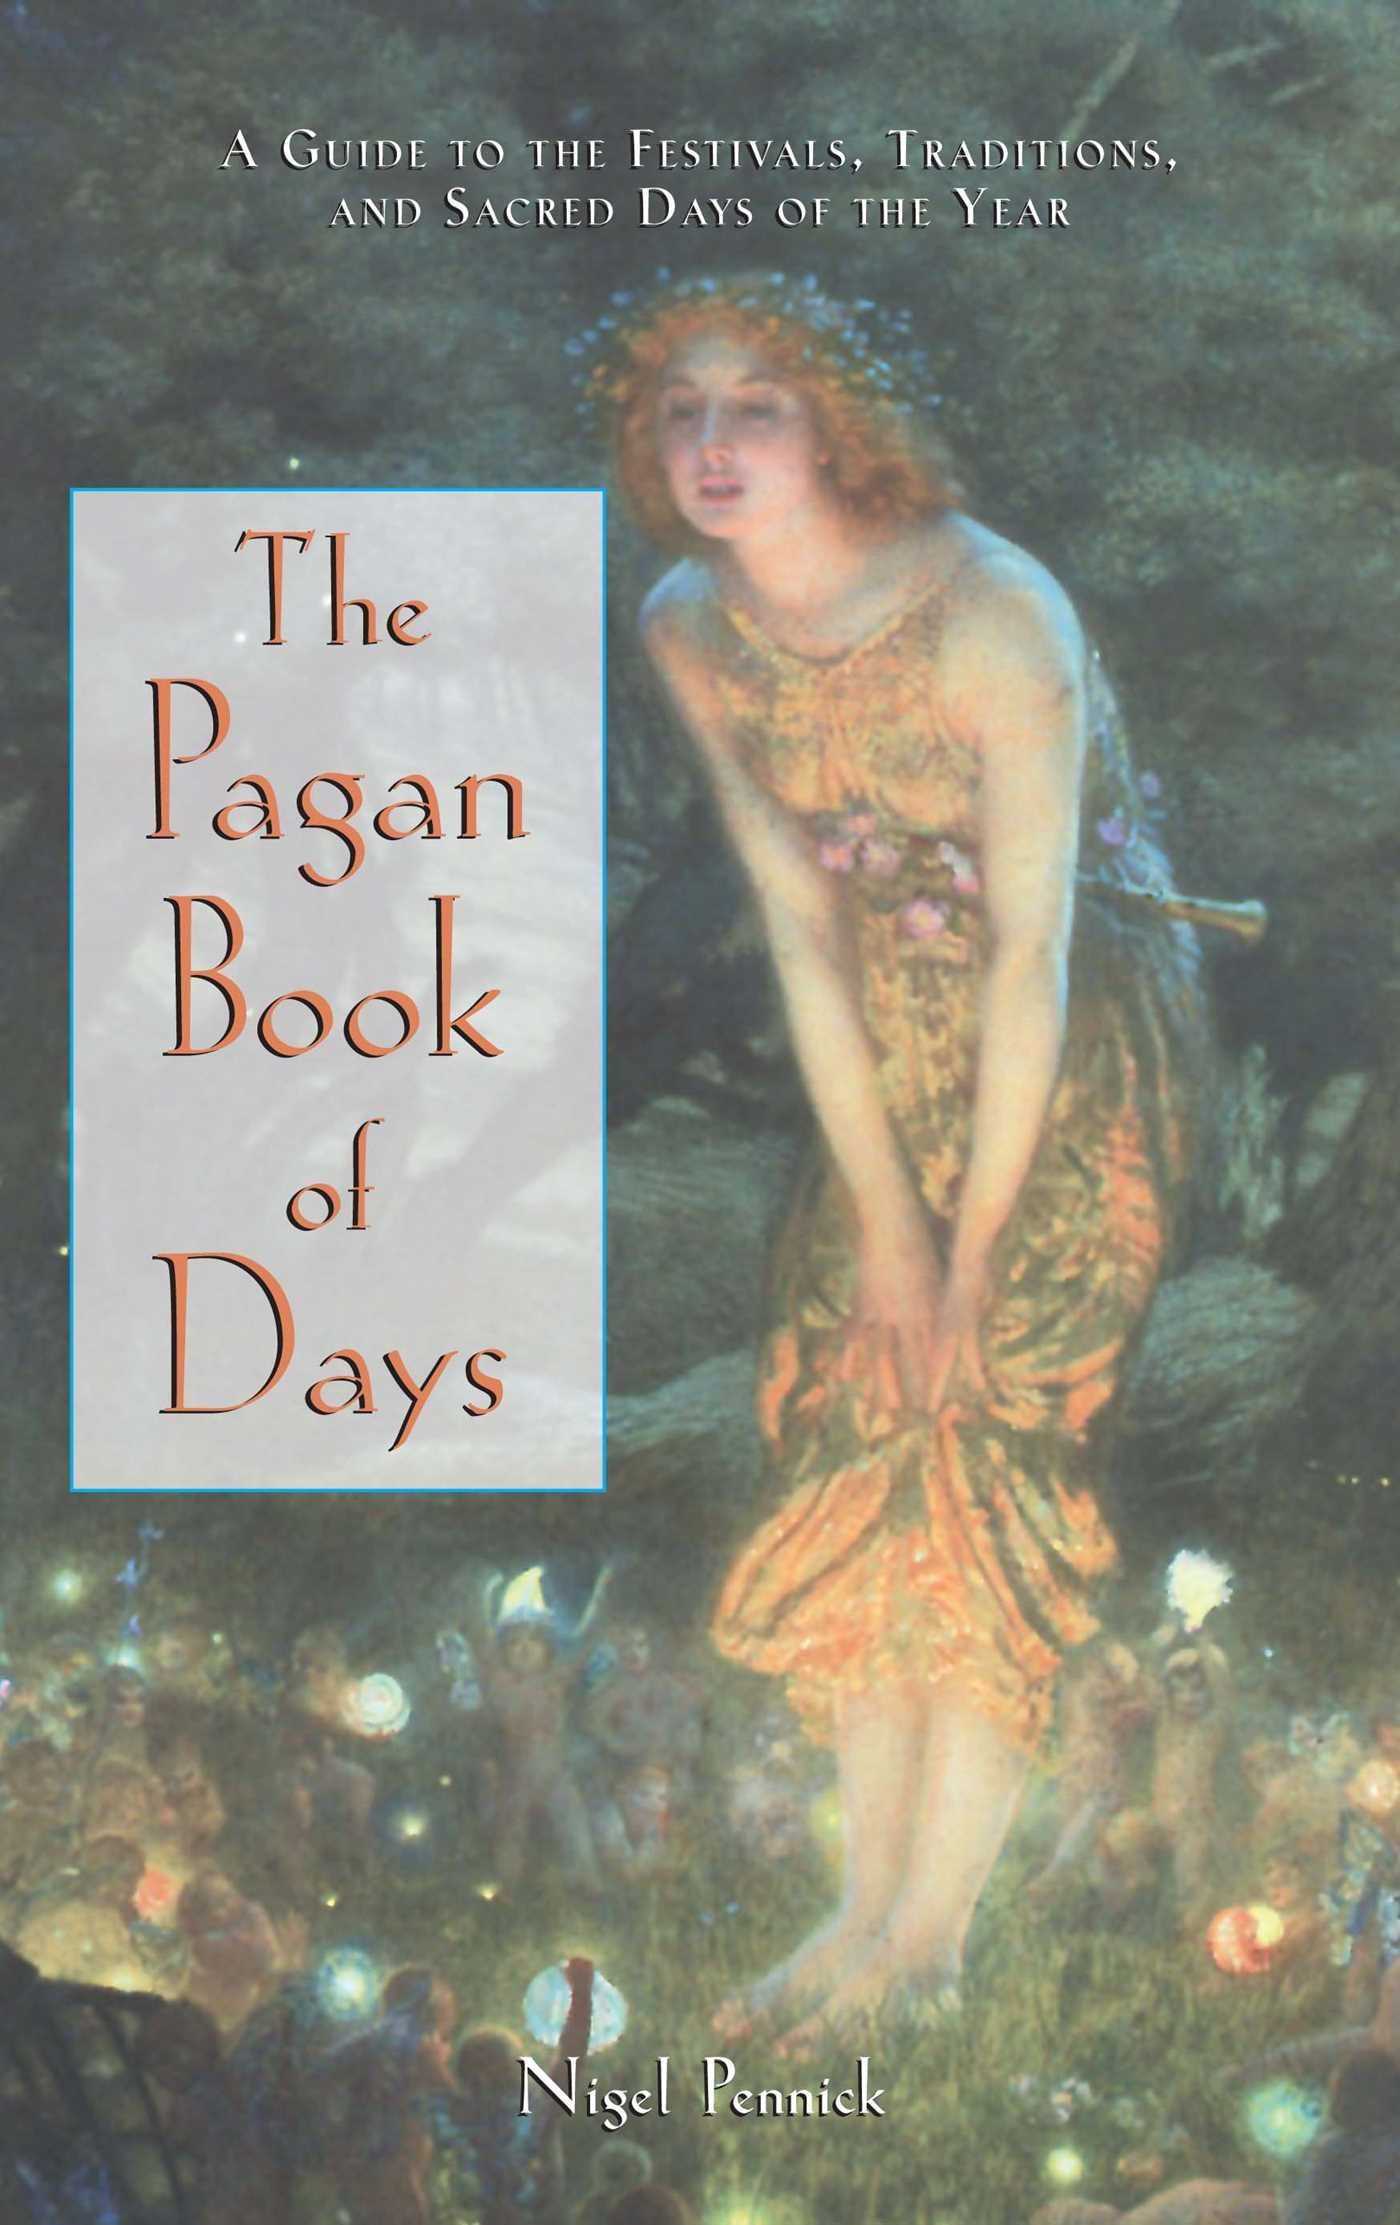 The Pagan Book of Days | Book by Nigel Pennick | Official Publisher